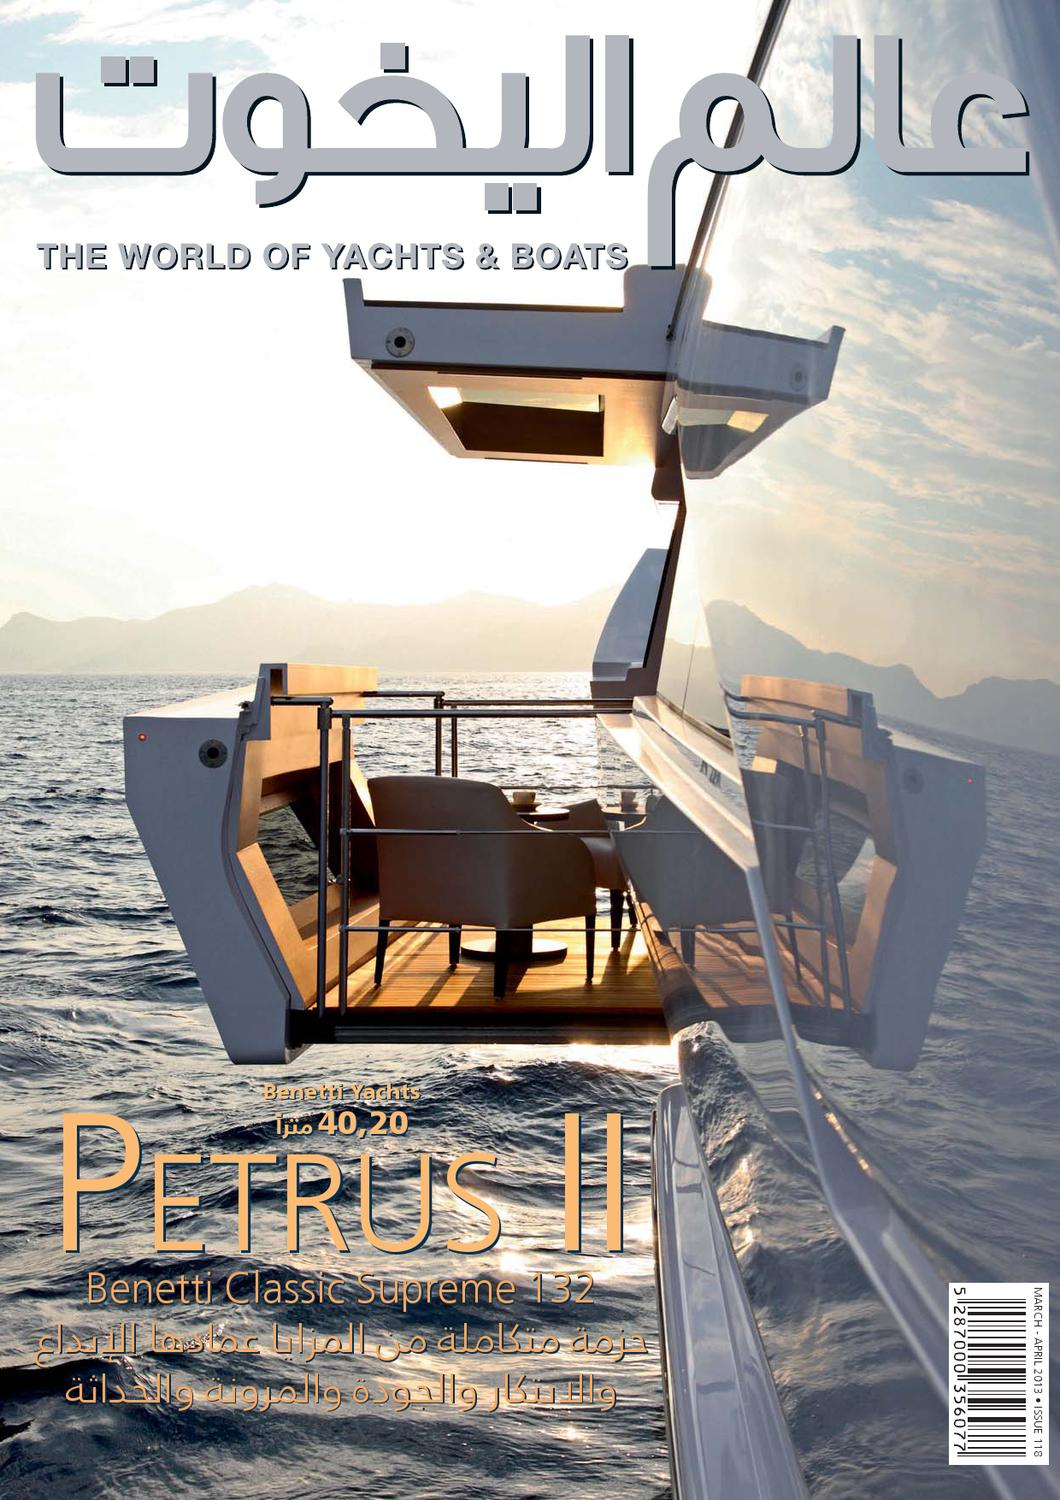 919073bbf March / April 2013 issue by The World of Yachts & Boats - issuu